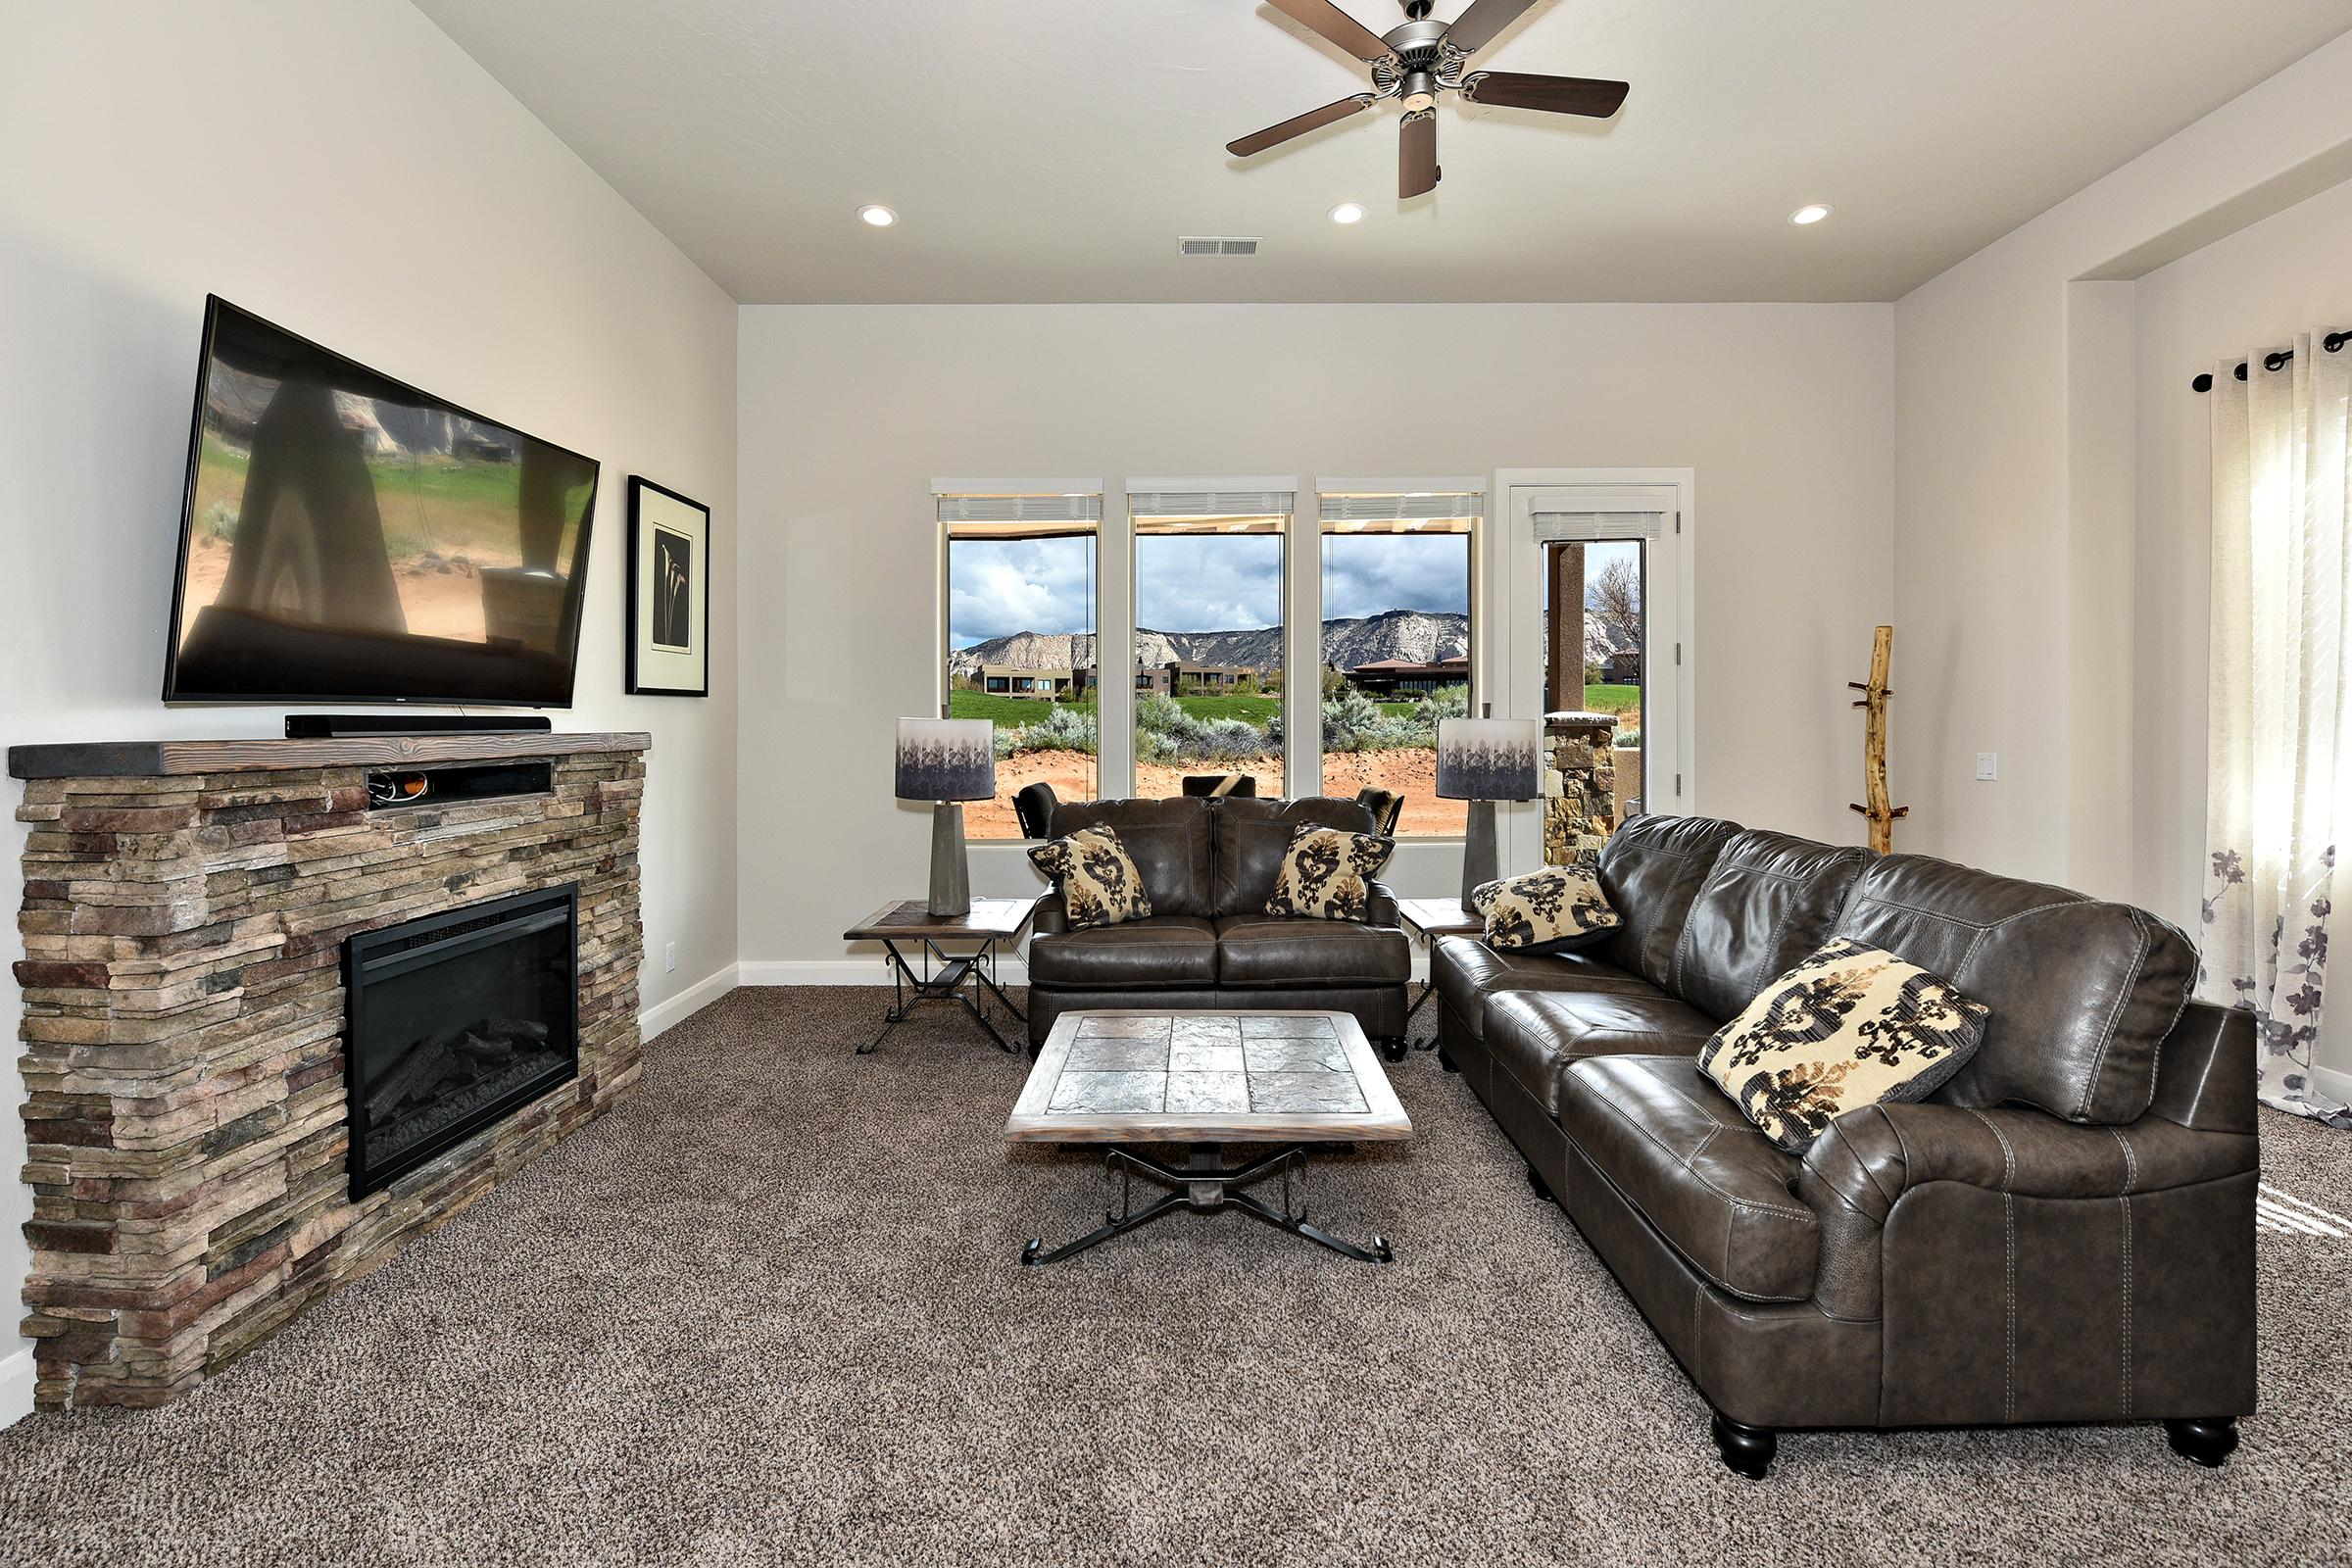 The living room has a beautiful view of The Ledges Golf Course.